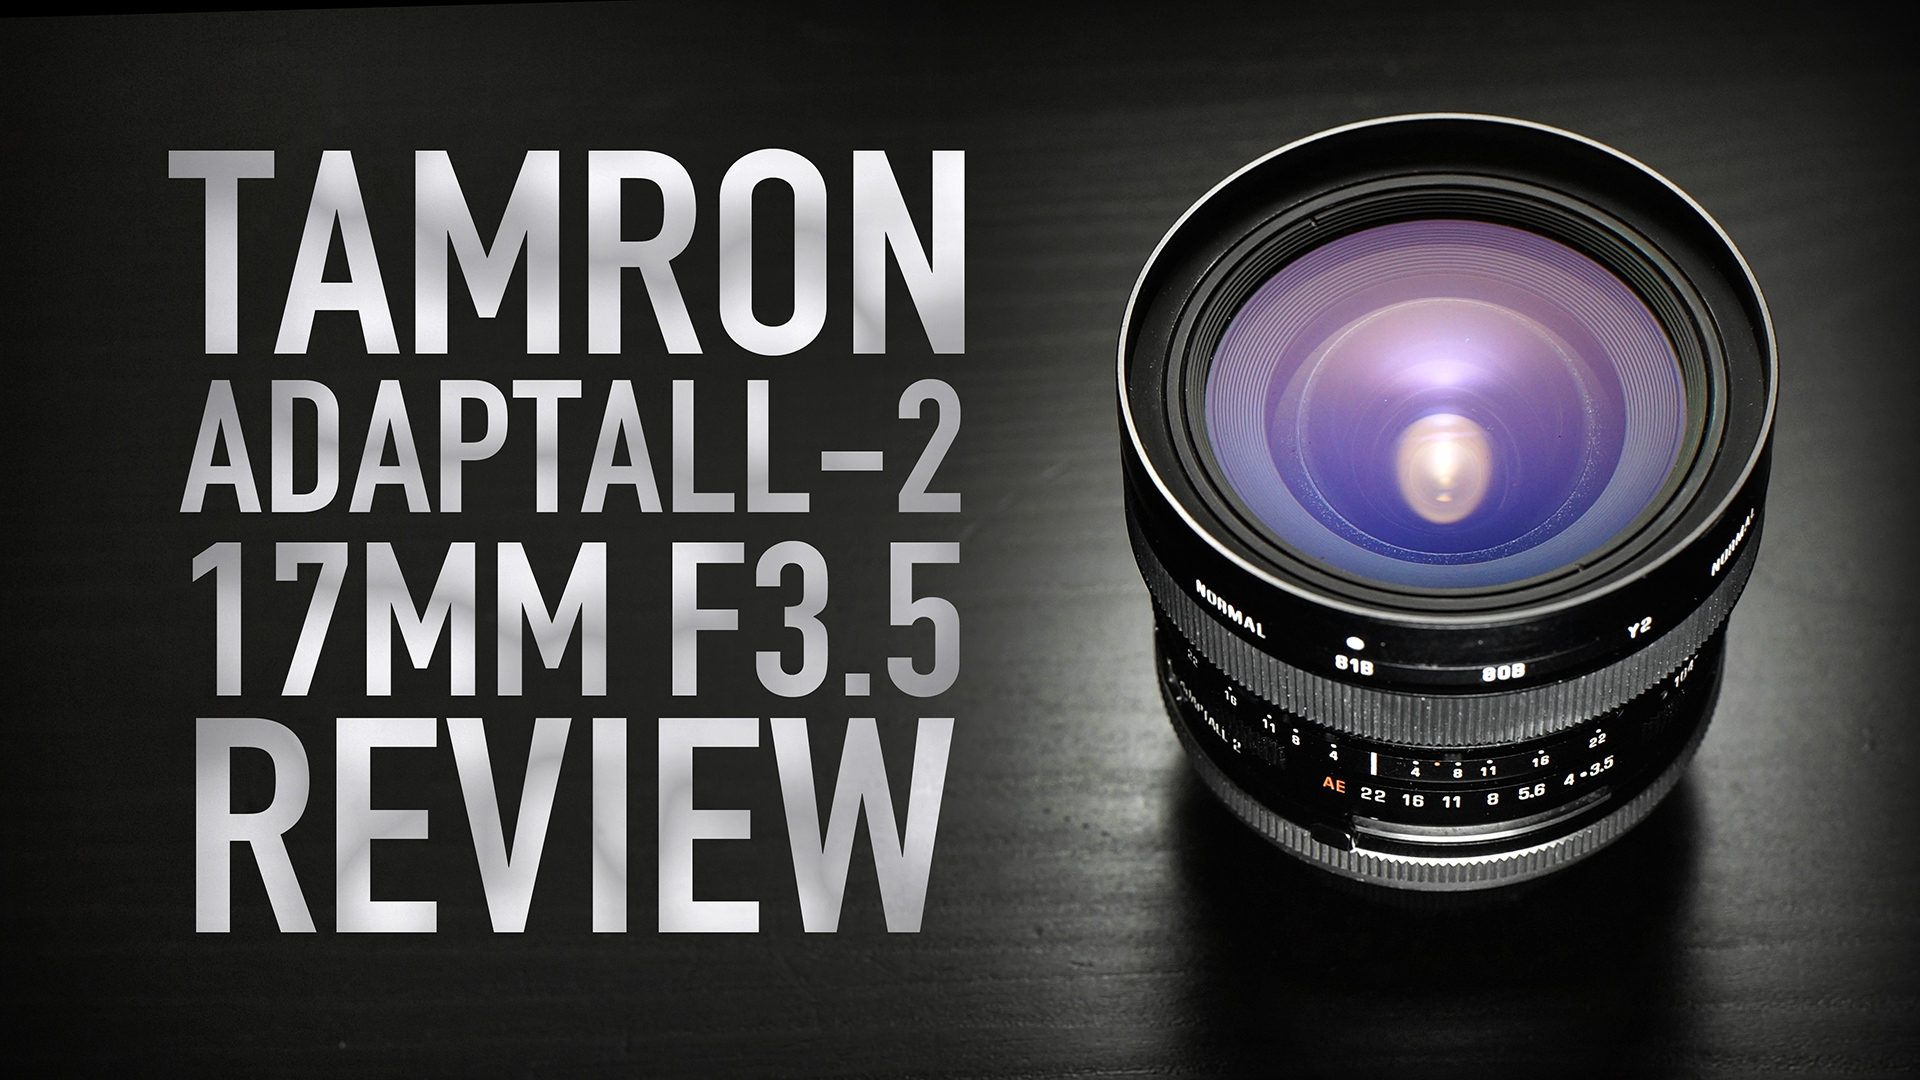 Tamron Adaptall-2 17mm F3.5 REVIEW